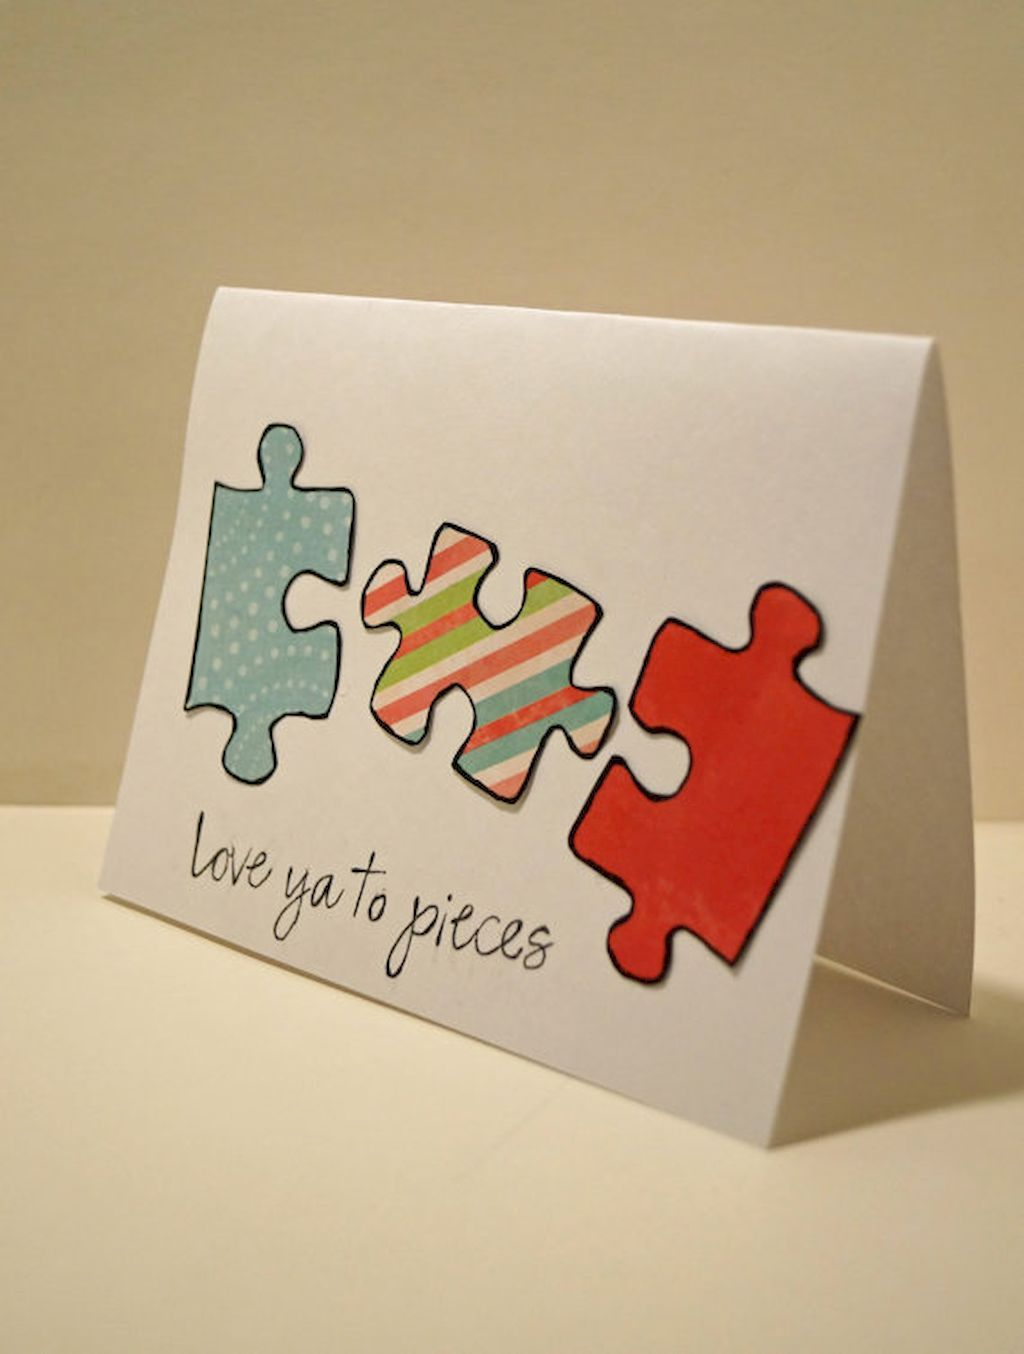 50 romantic valentines cards design ideas cards holidays and crafty